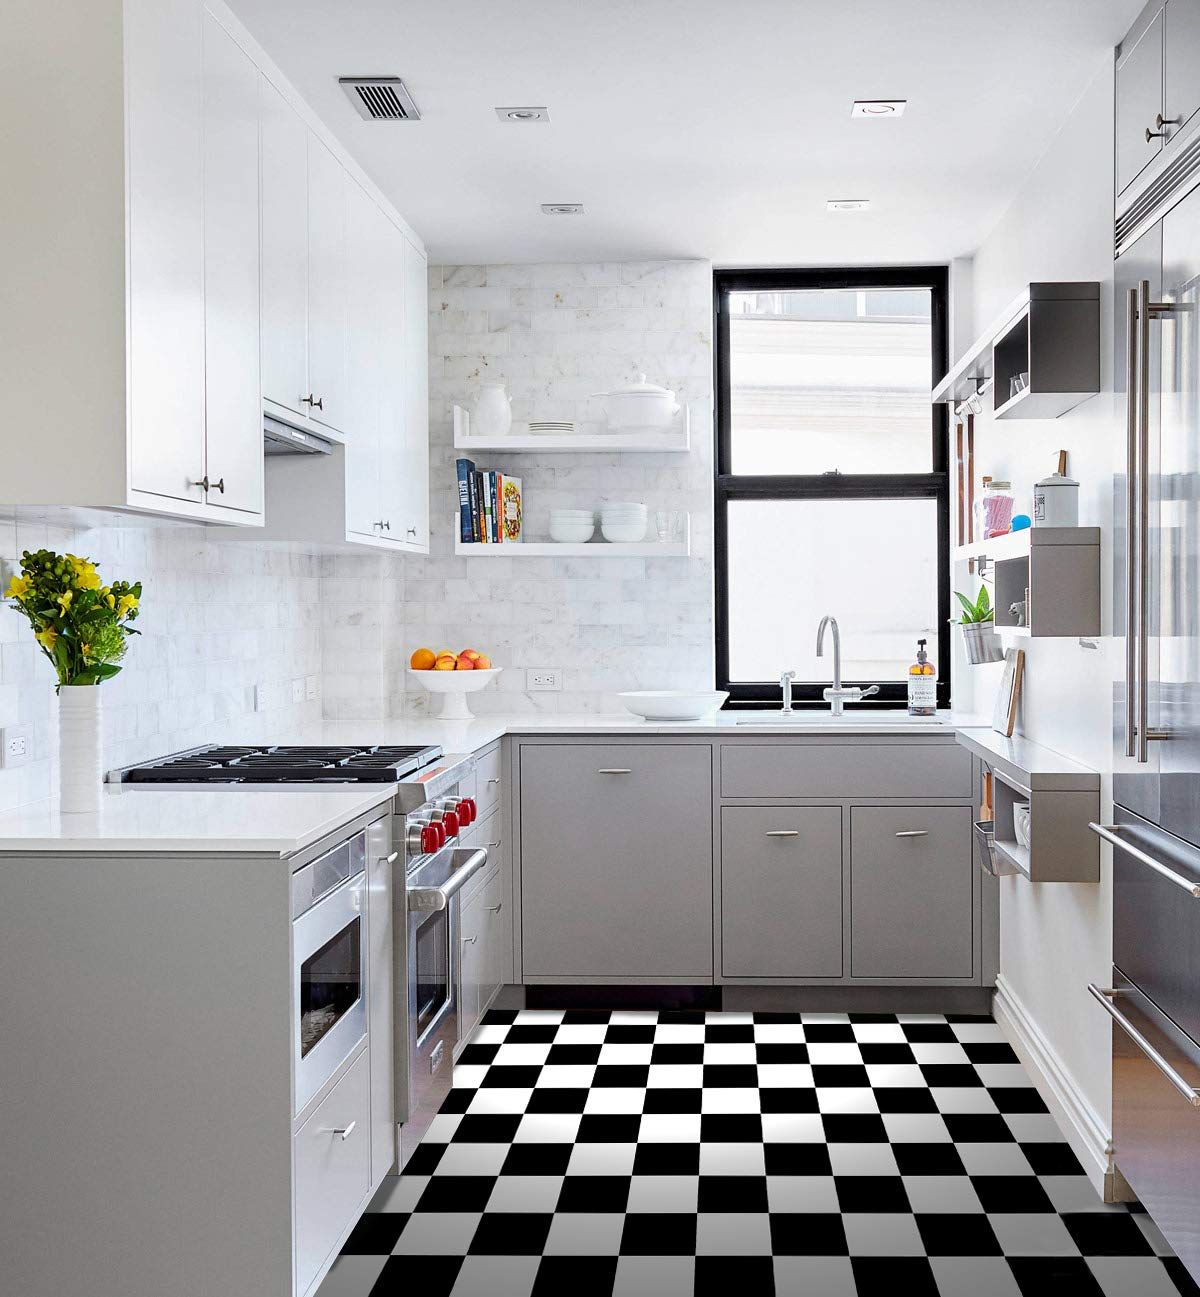 Raphael Rozen Vinyl Floor Tile 12 By 12 Inch Checkered Black And White Tile Pack Of 20 Amazon Com Black And White Tiles White Floors Flooring